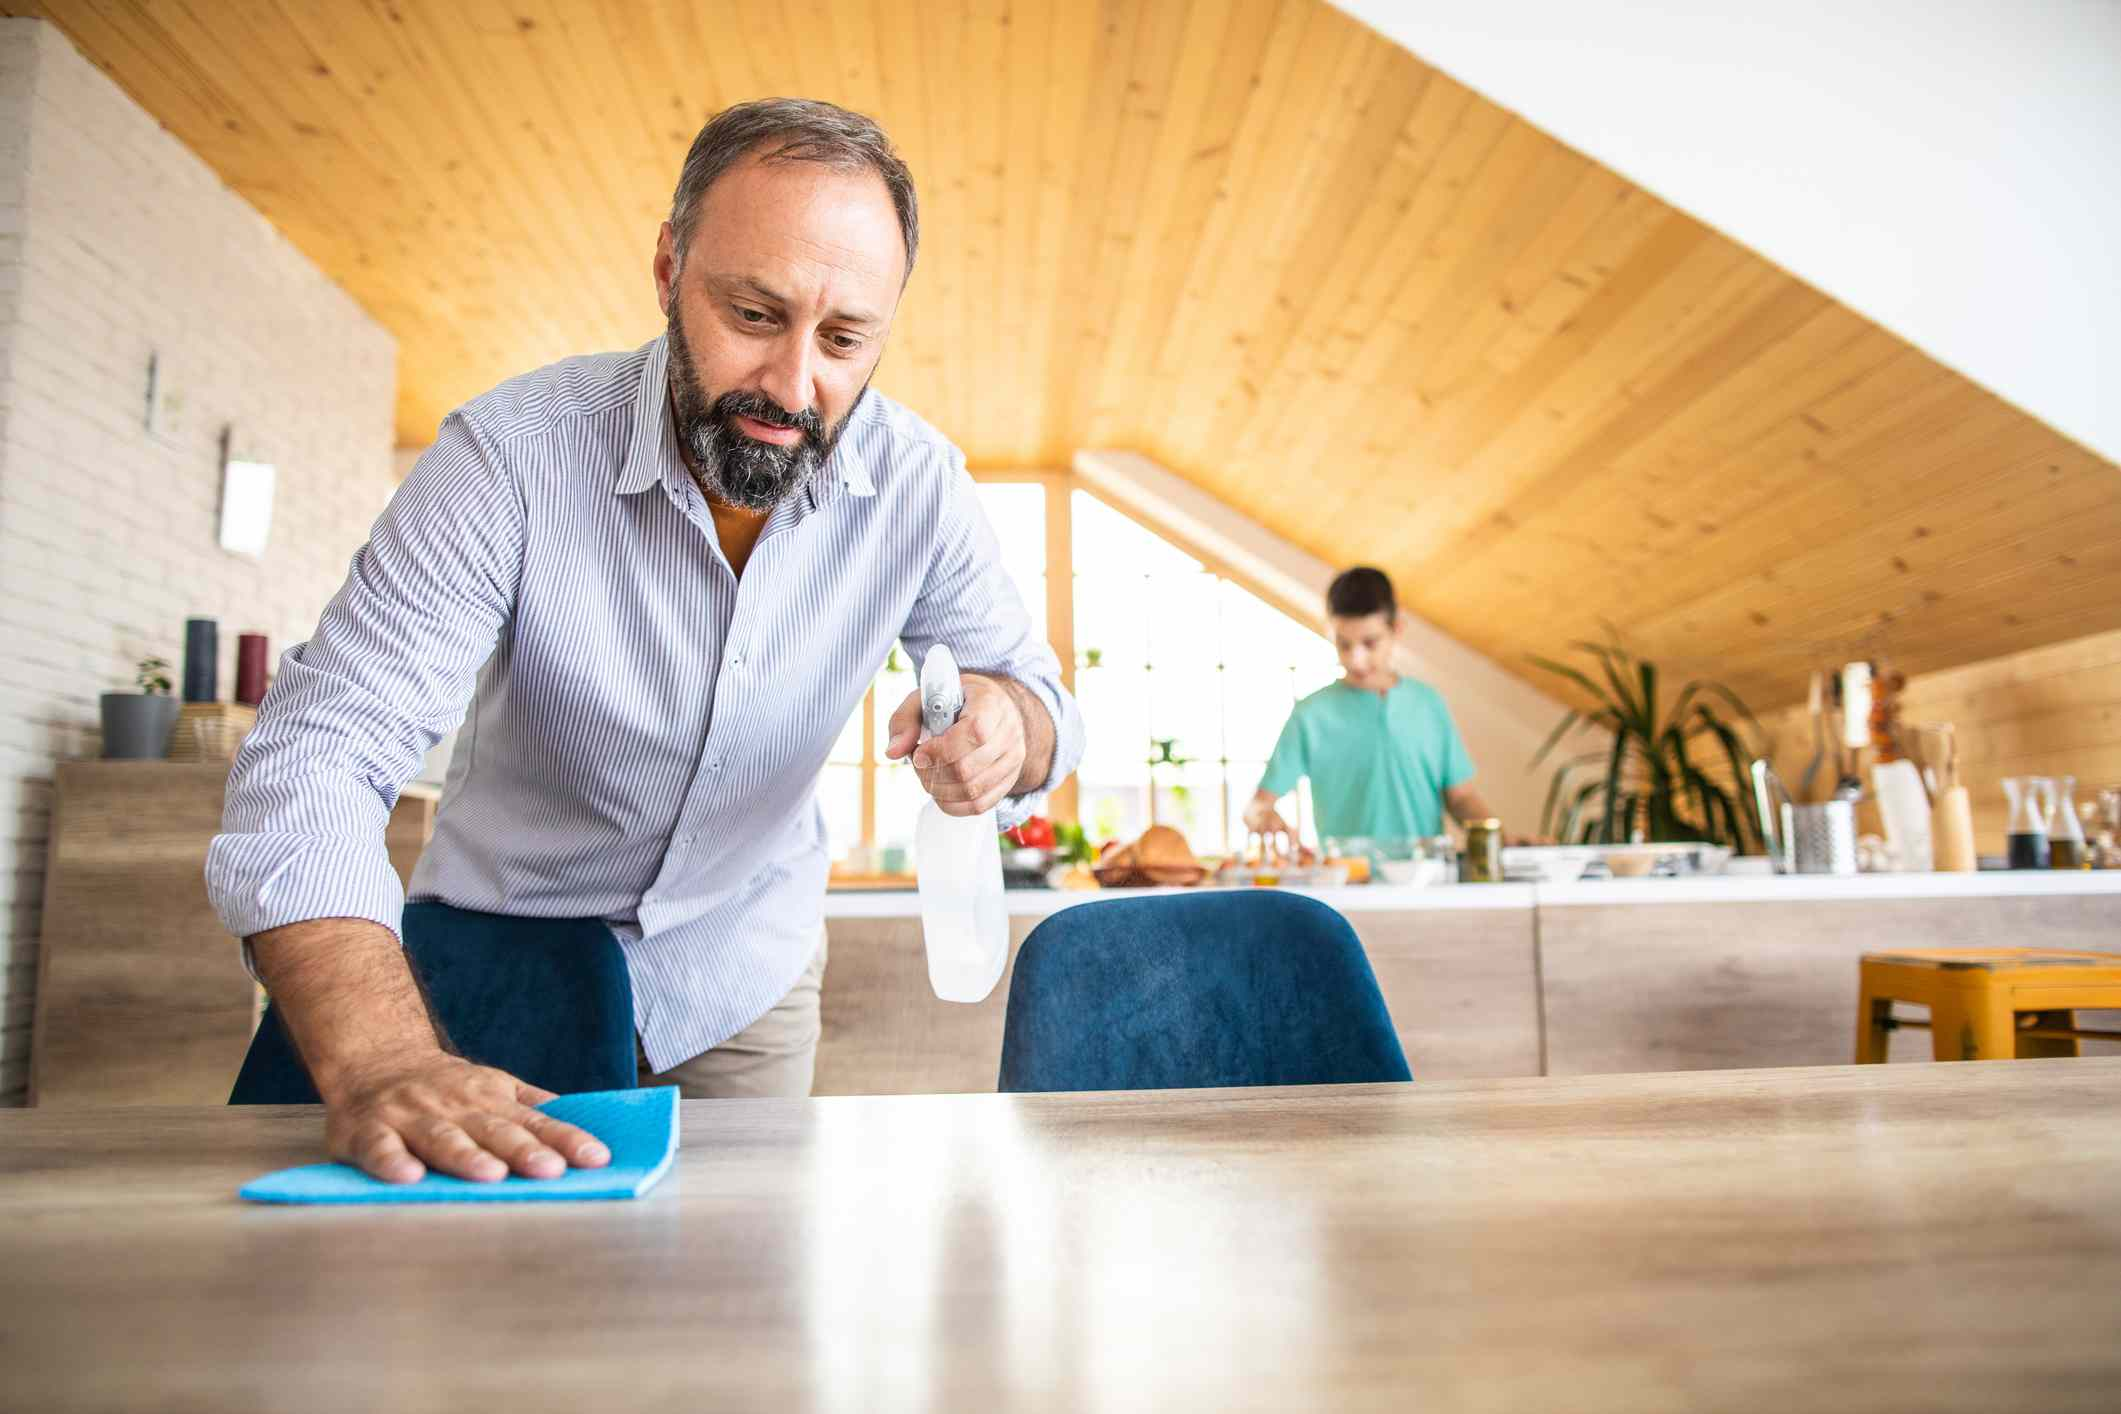 Man cleaning dining table